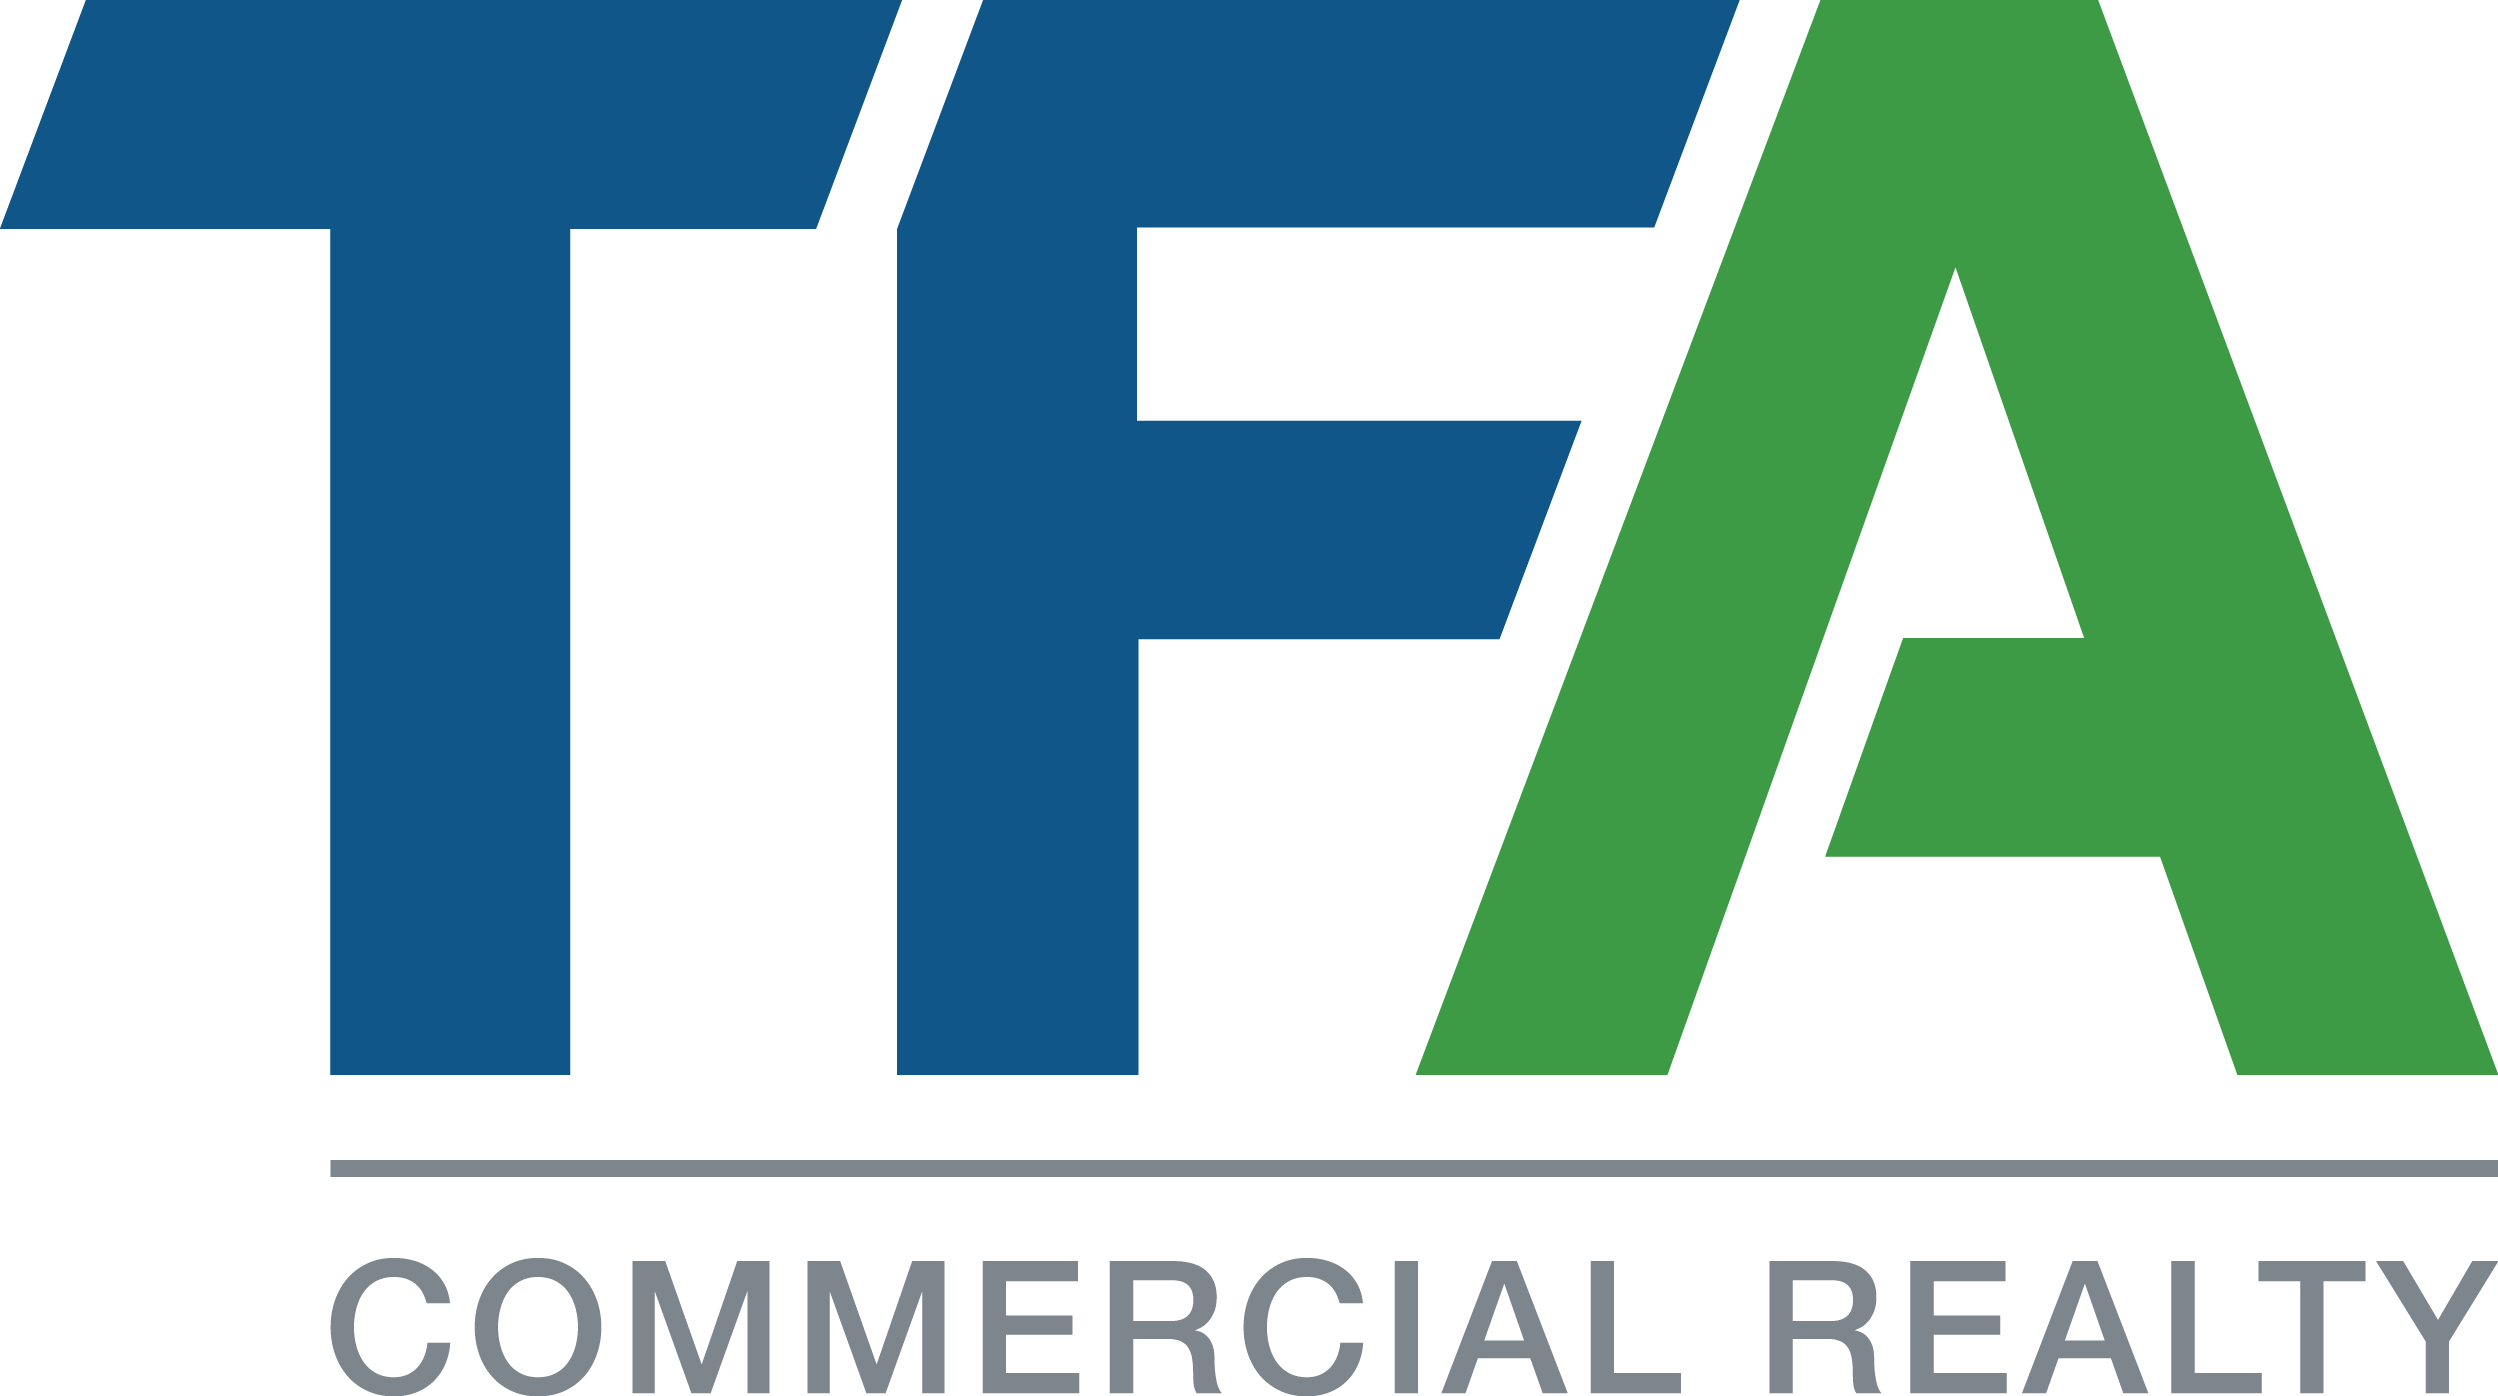 TFA Commercial - CORFAC International